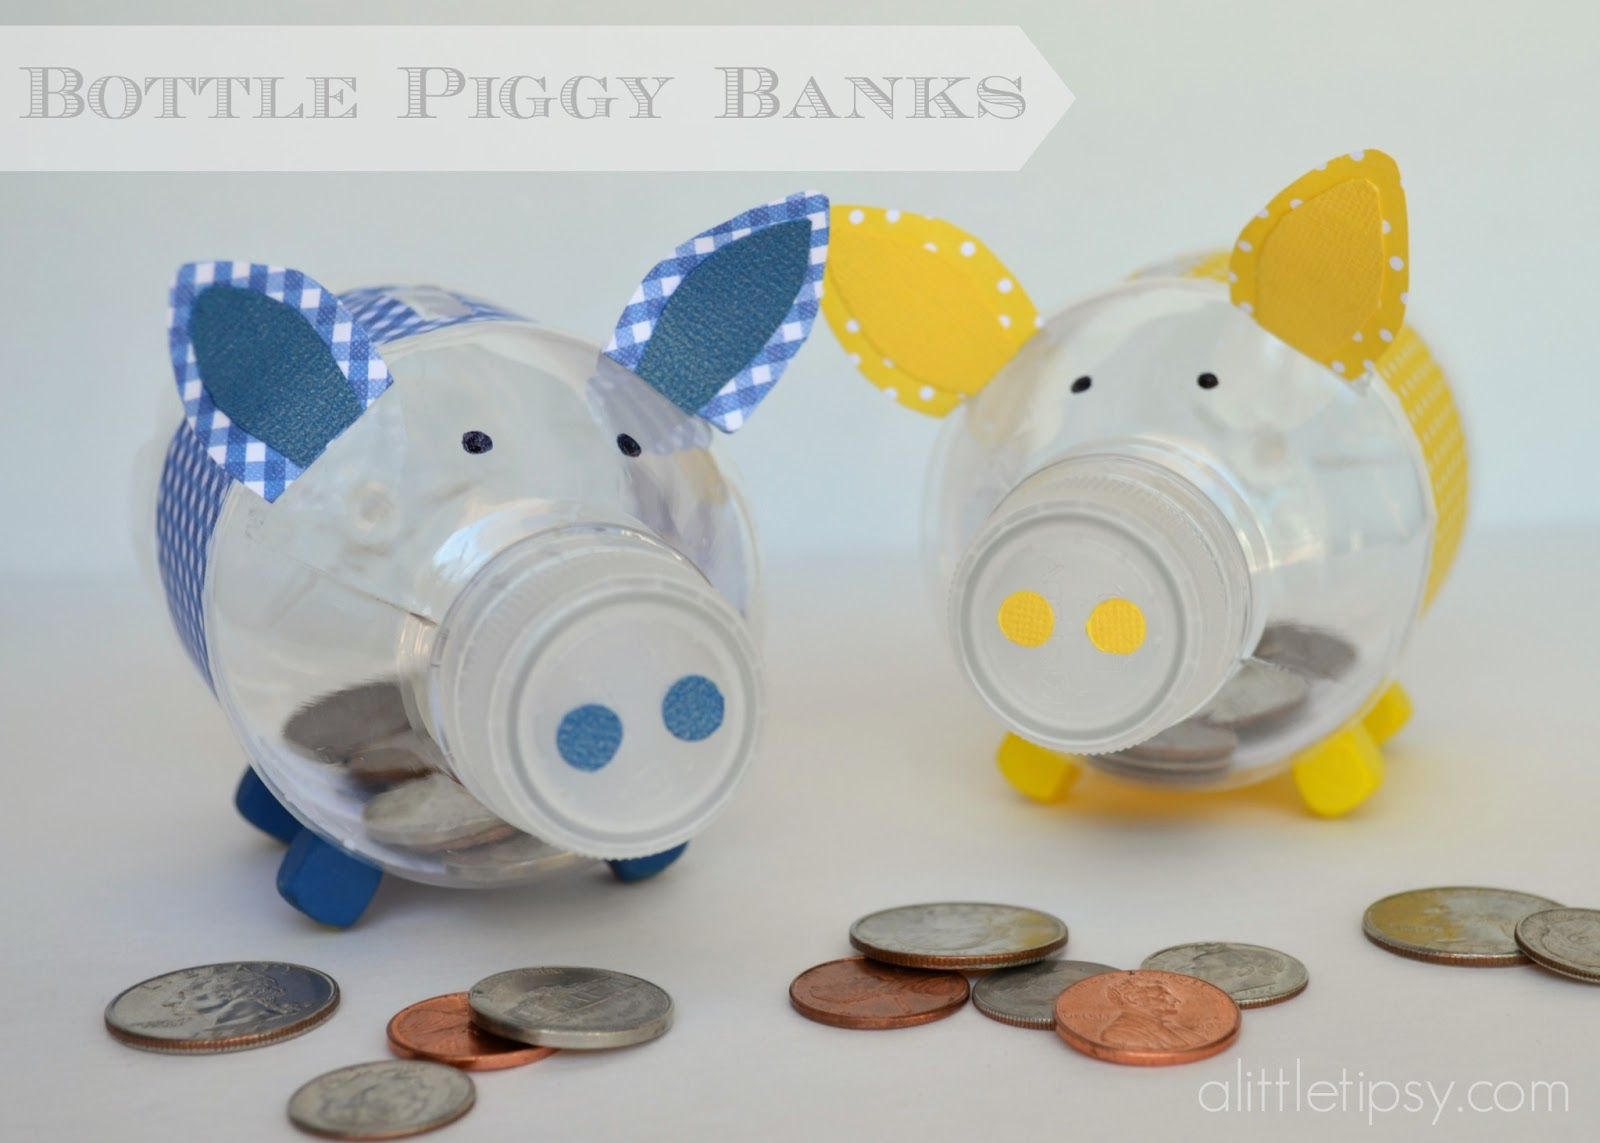 Bottle piggy banks 12monthsofmartha giveaway a little tipsy for What to make out of water bottles